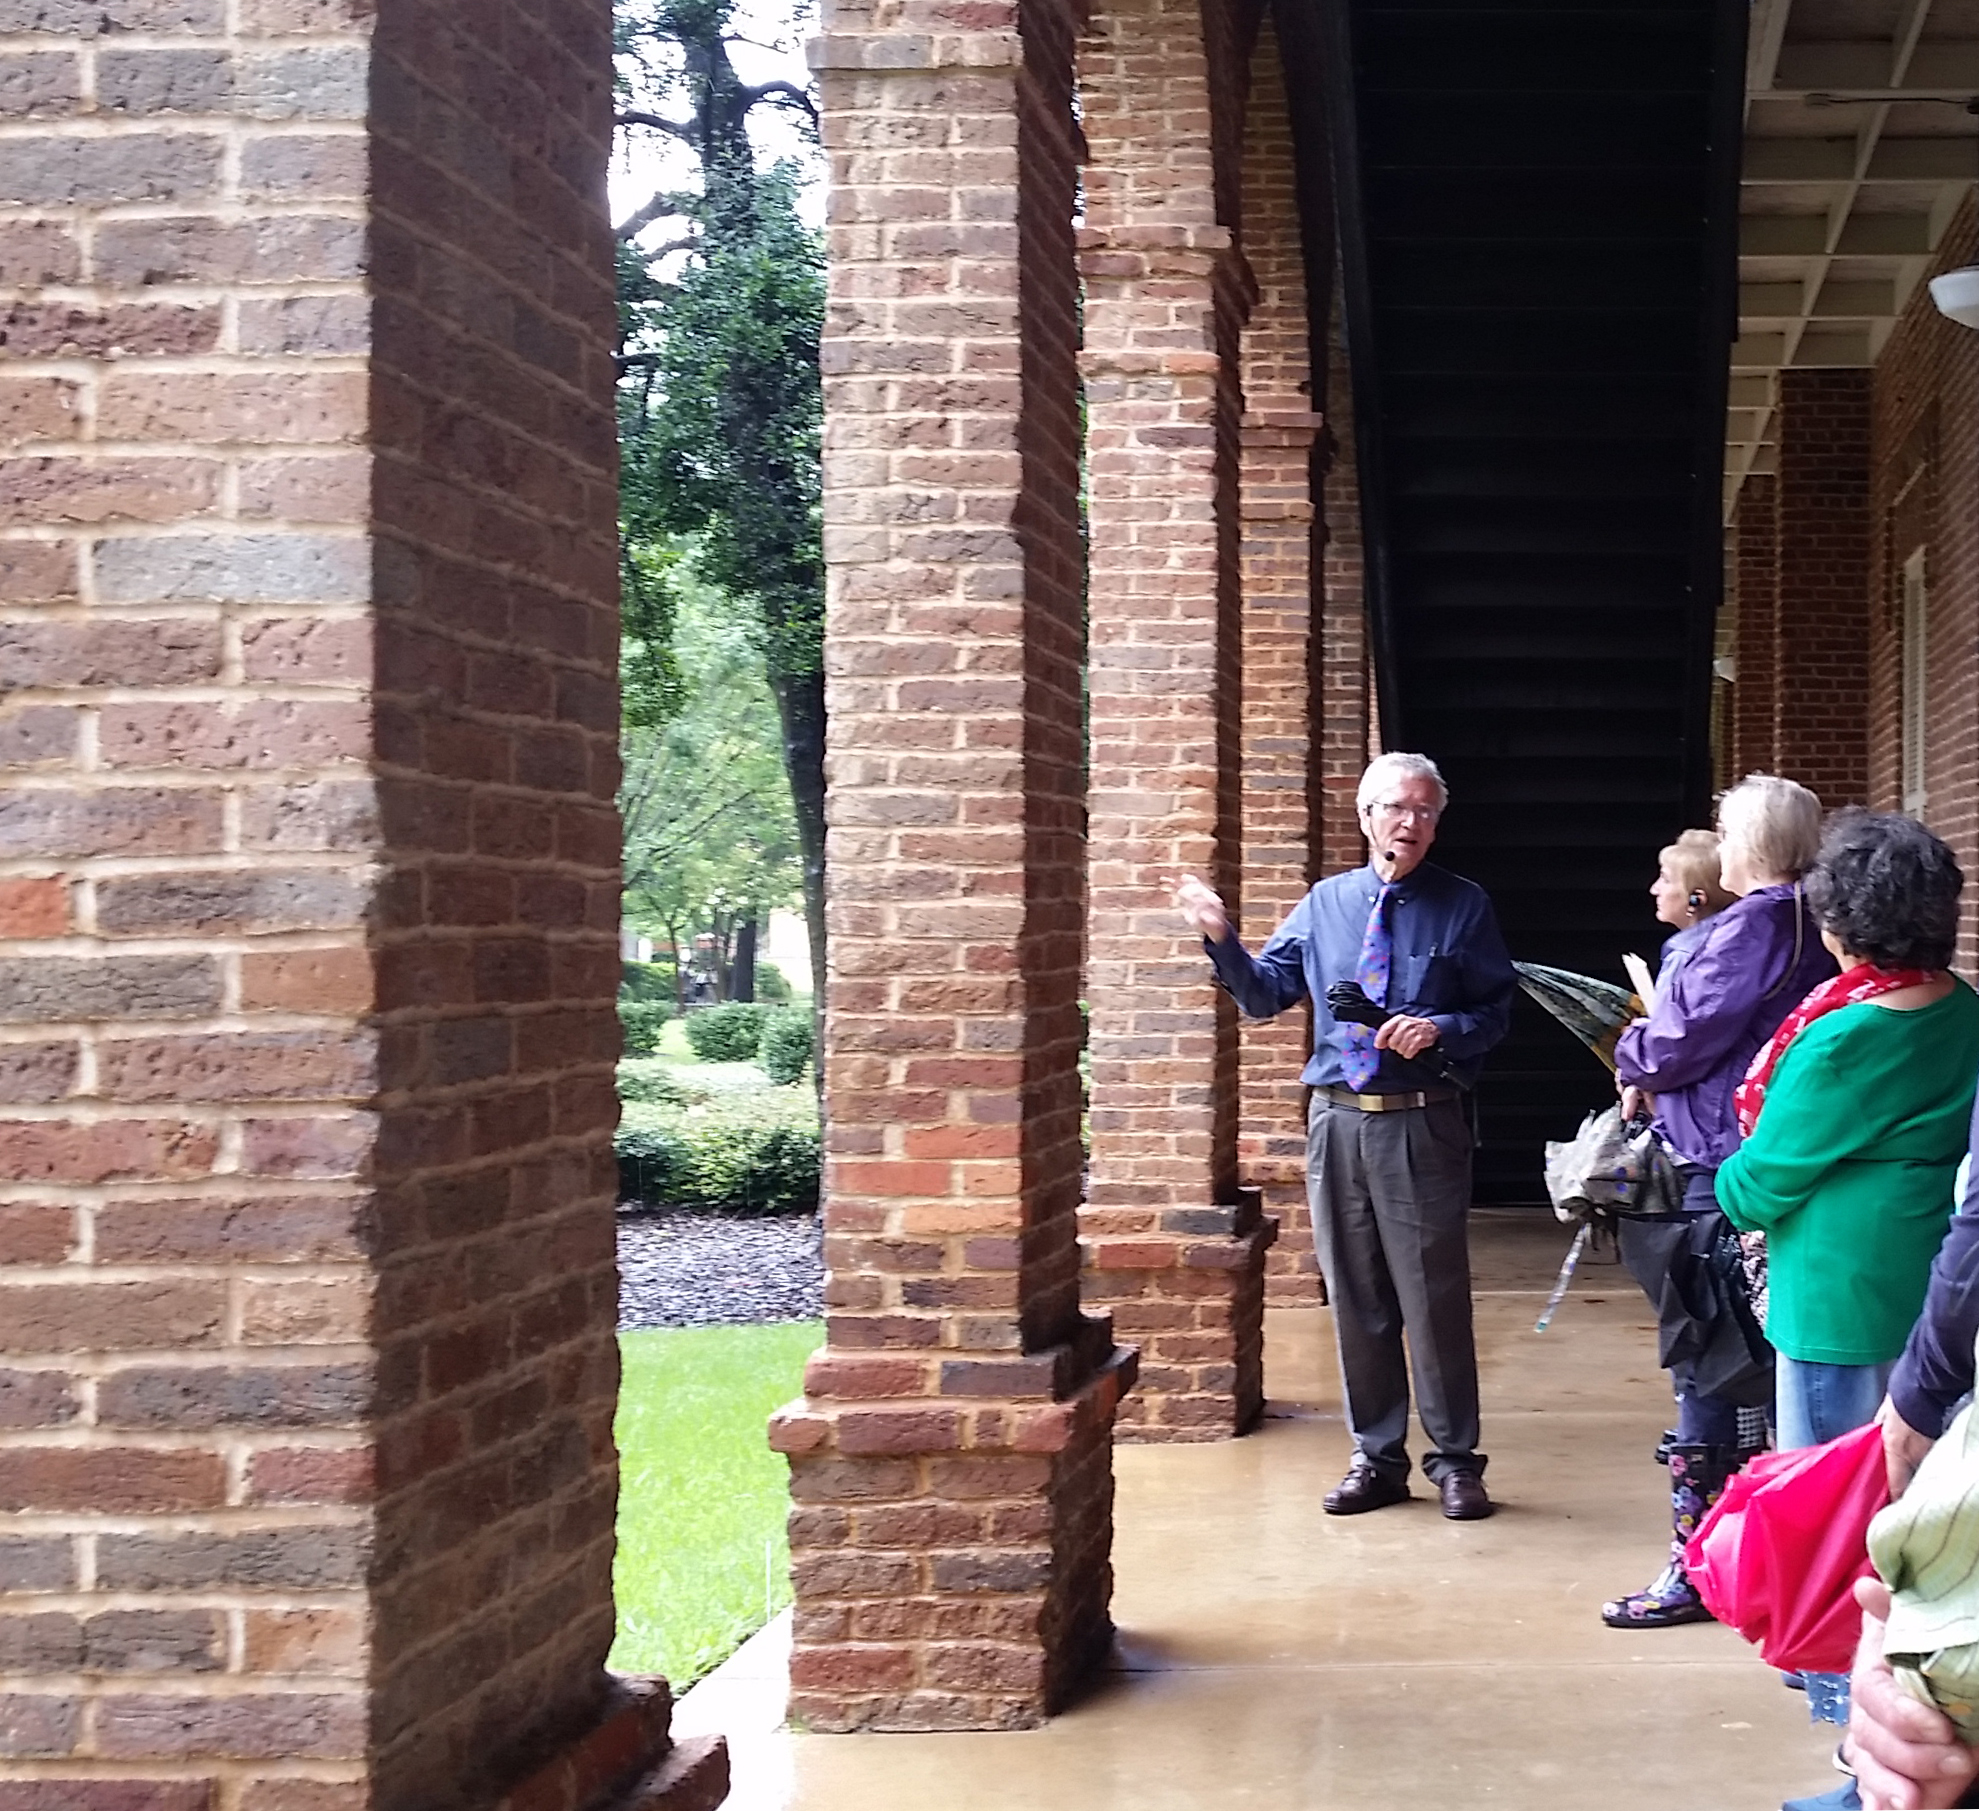 Dr. Mellown gives a tour of UA's historic architecture.